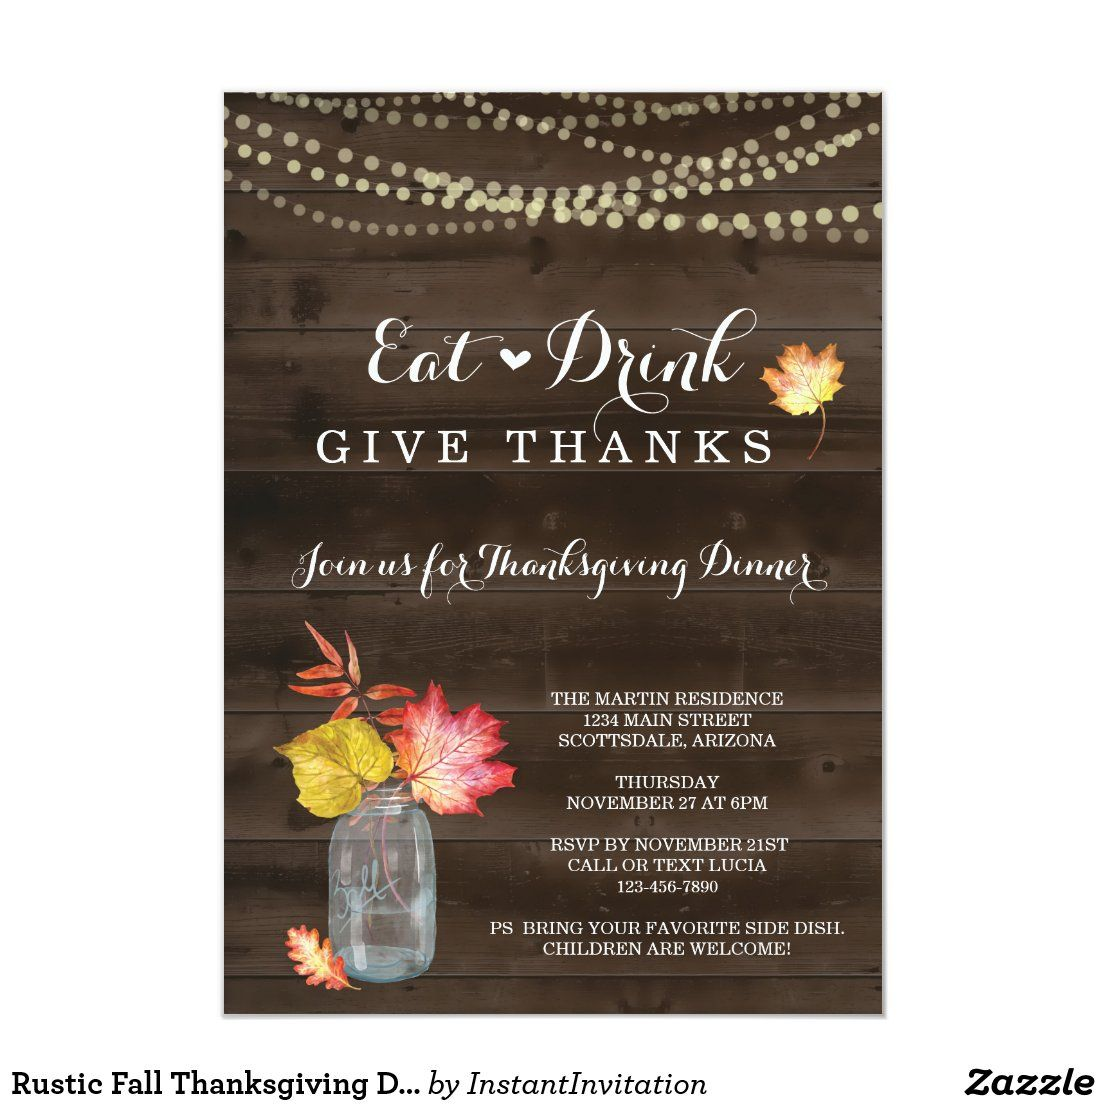 Rustic Fall Thanksgiving Dinner Party Invitation #thanksgiving #givethanks #thanksgivingdinner #thanksgivingparty #styledevents #afflink #zazzle #zazzlemade #styledparties #celebrateandparty #celebrationparty #party #partyinspiration #partystyling #partydecoration #partyideas #partyinspo #partytheme #partyprops #eventinspo #eventplanning #eventideas #partythemethursday #partythemeideas #partyinabox